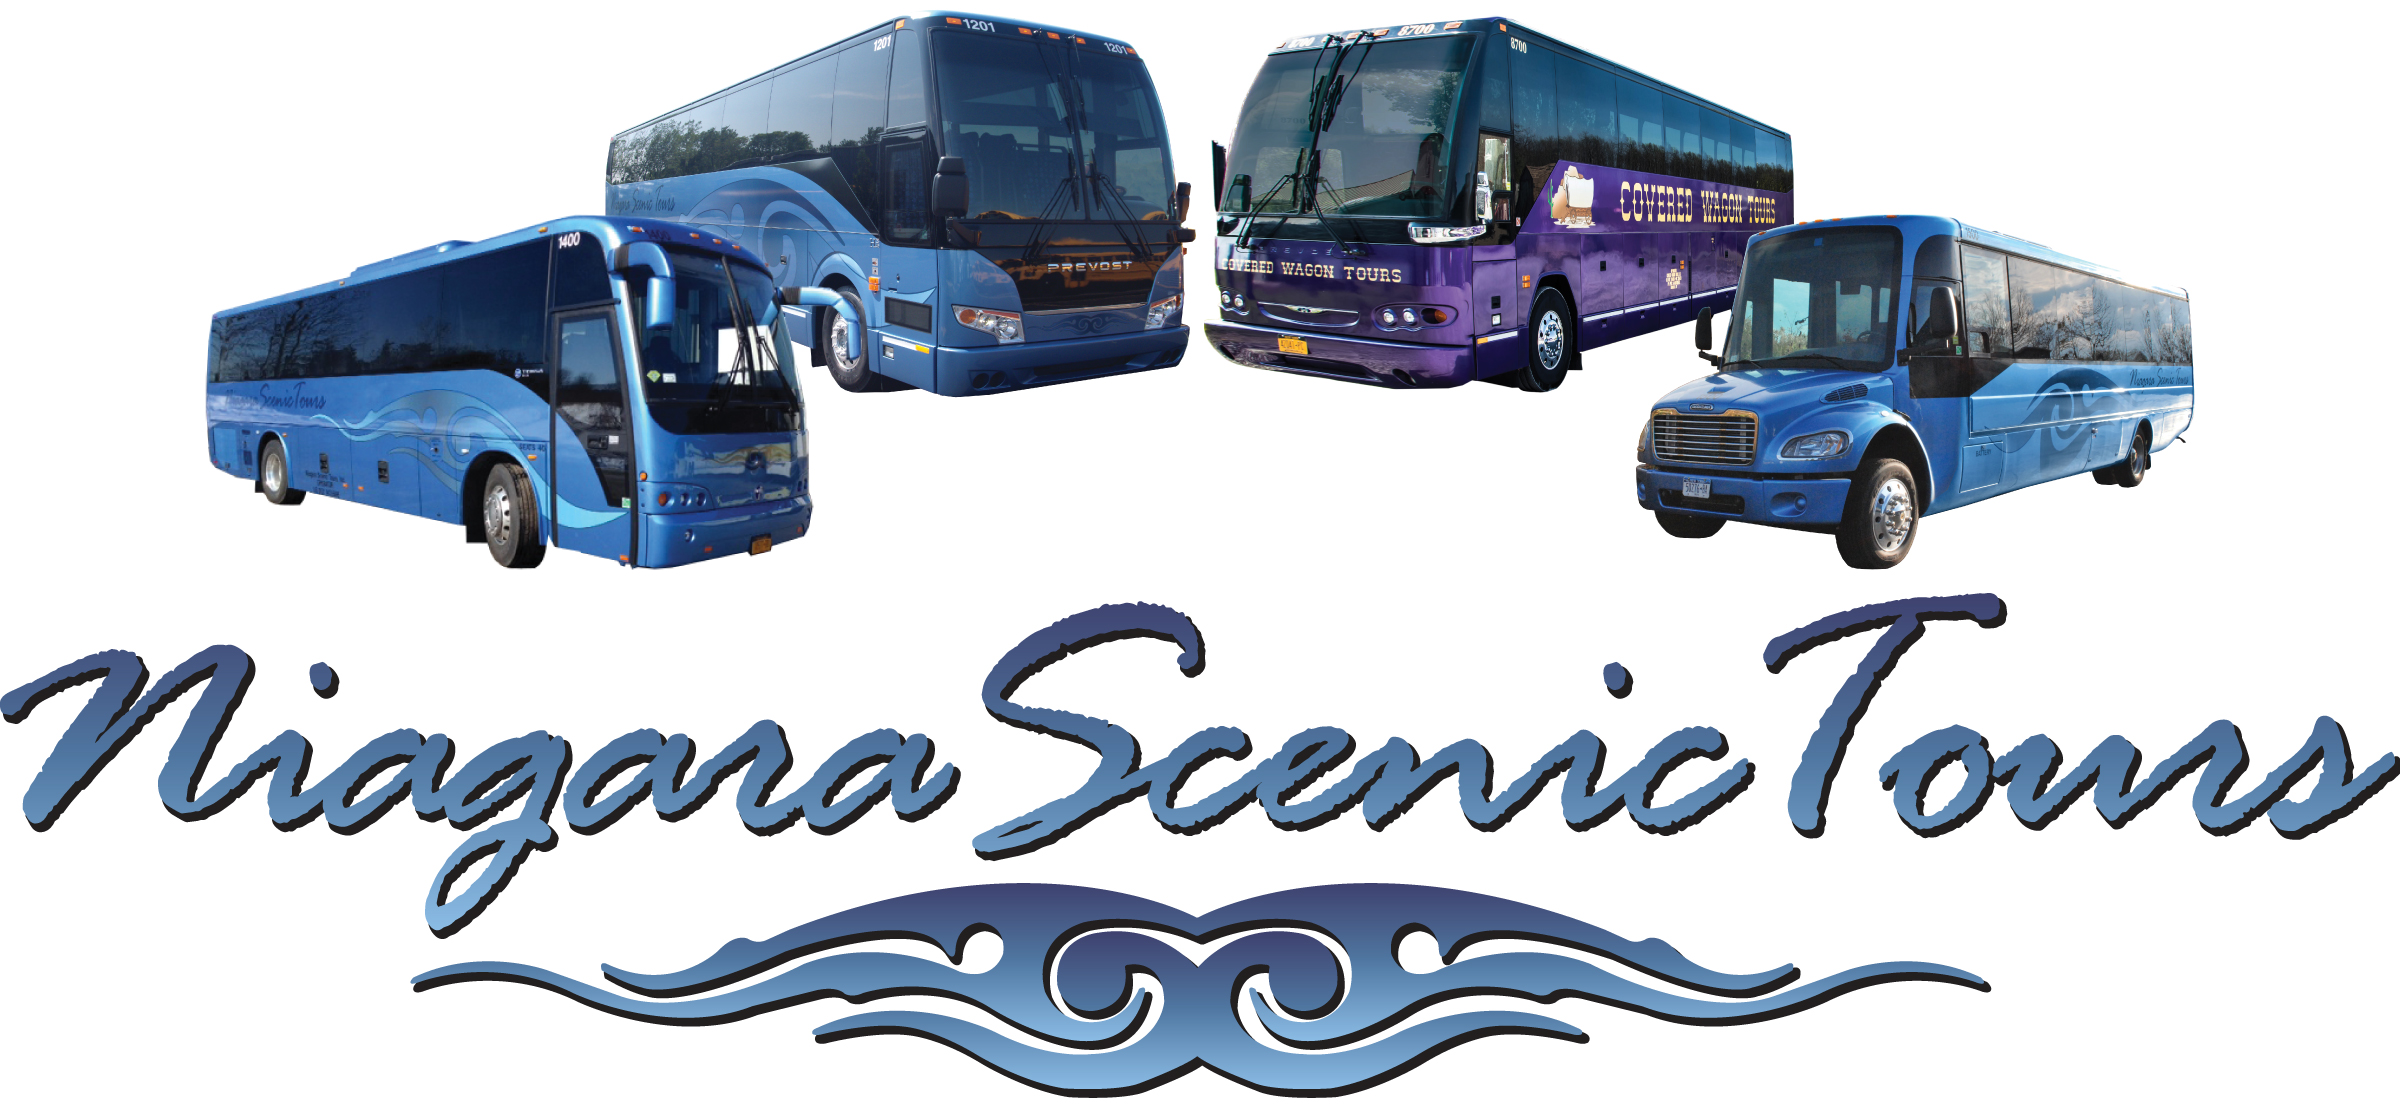 Niagara Scenic, Transportation, Travel, Dream Wedding Expo, Livingston County Chamber of Commerce & Tourism